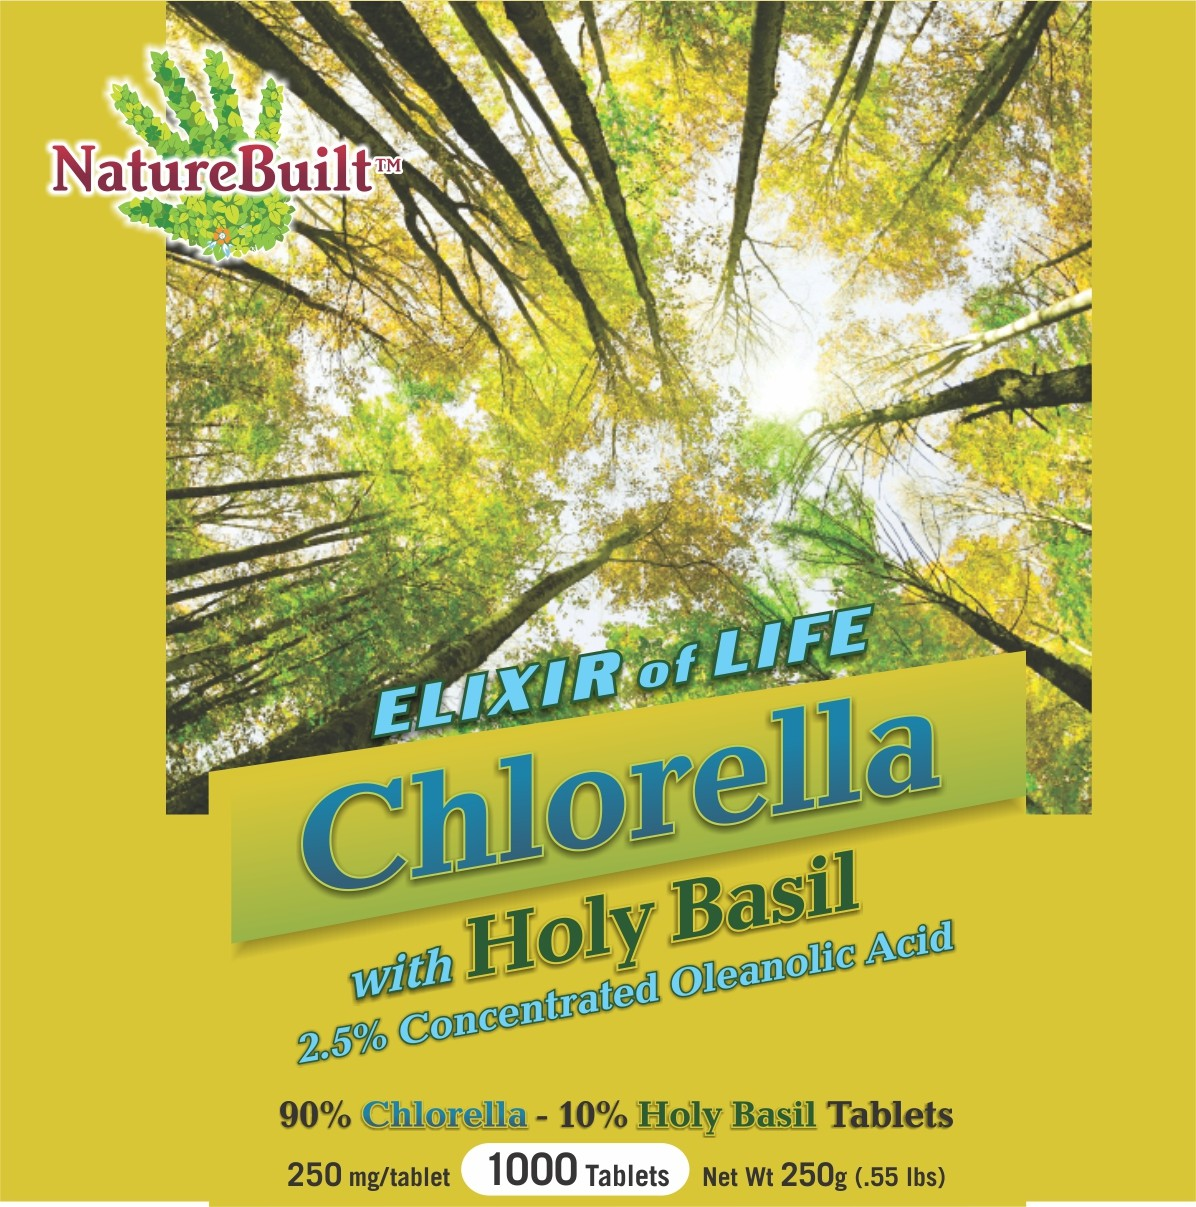 90% Chlorella 10% Holy Basil Tablets